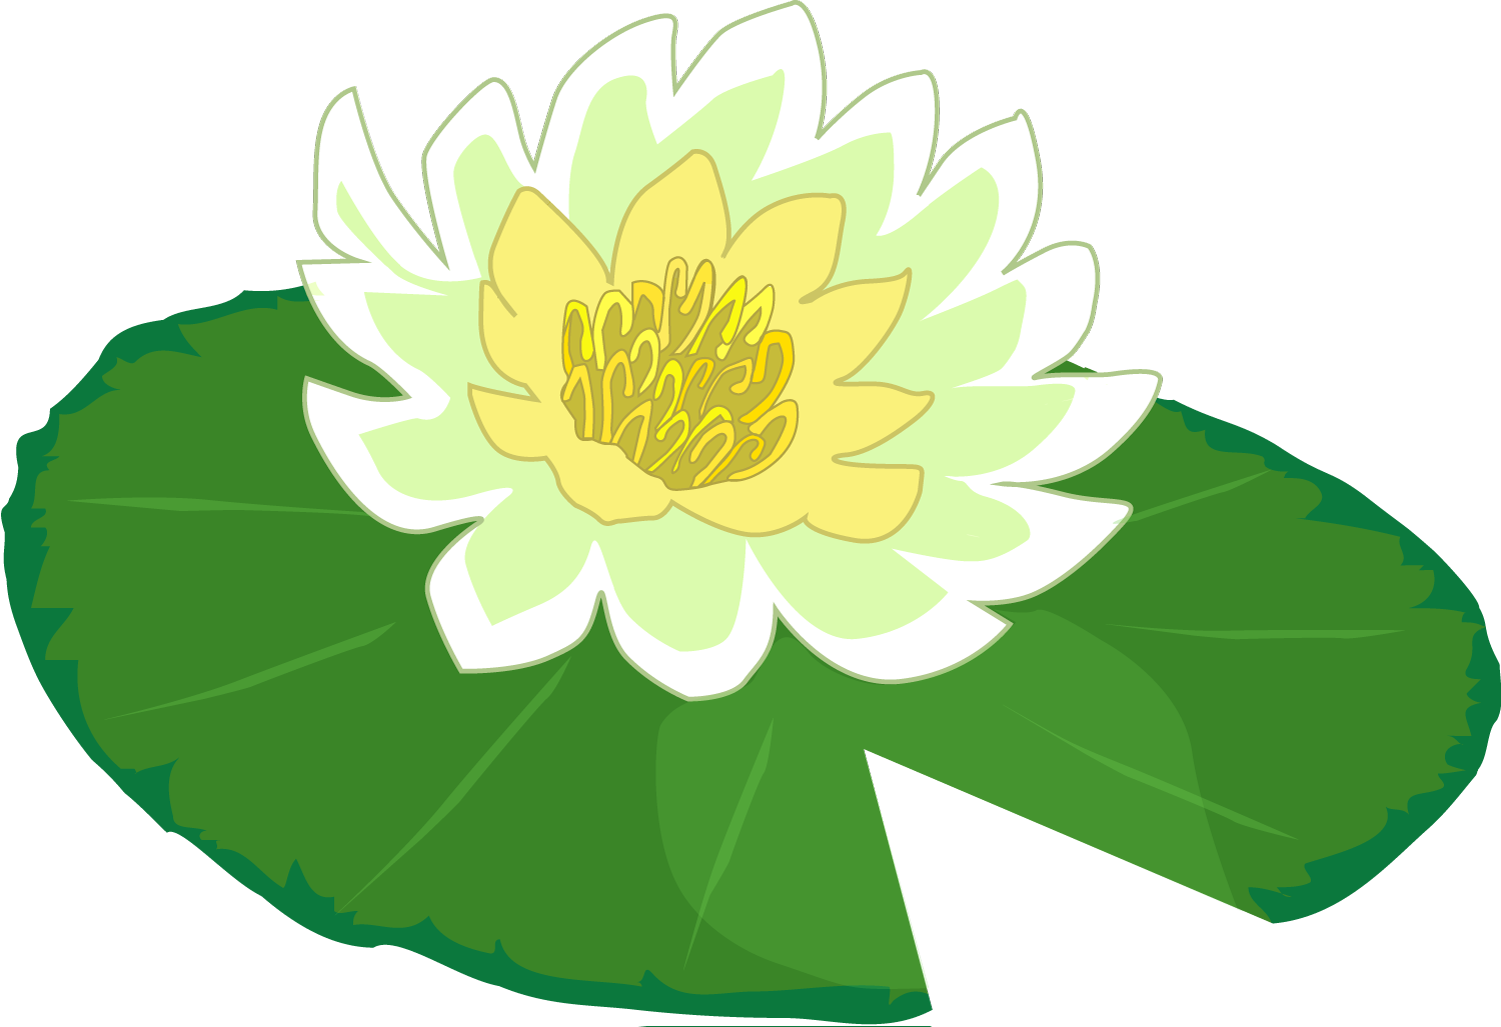 Water lily flower clipart banner transparent download White flower water lily clipart the cliparts png - Clipartix banner transparent download